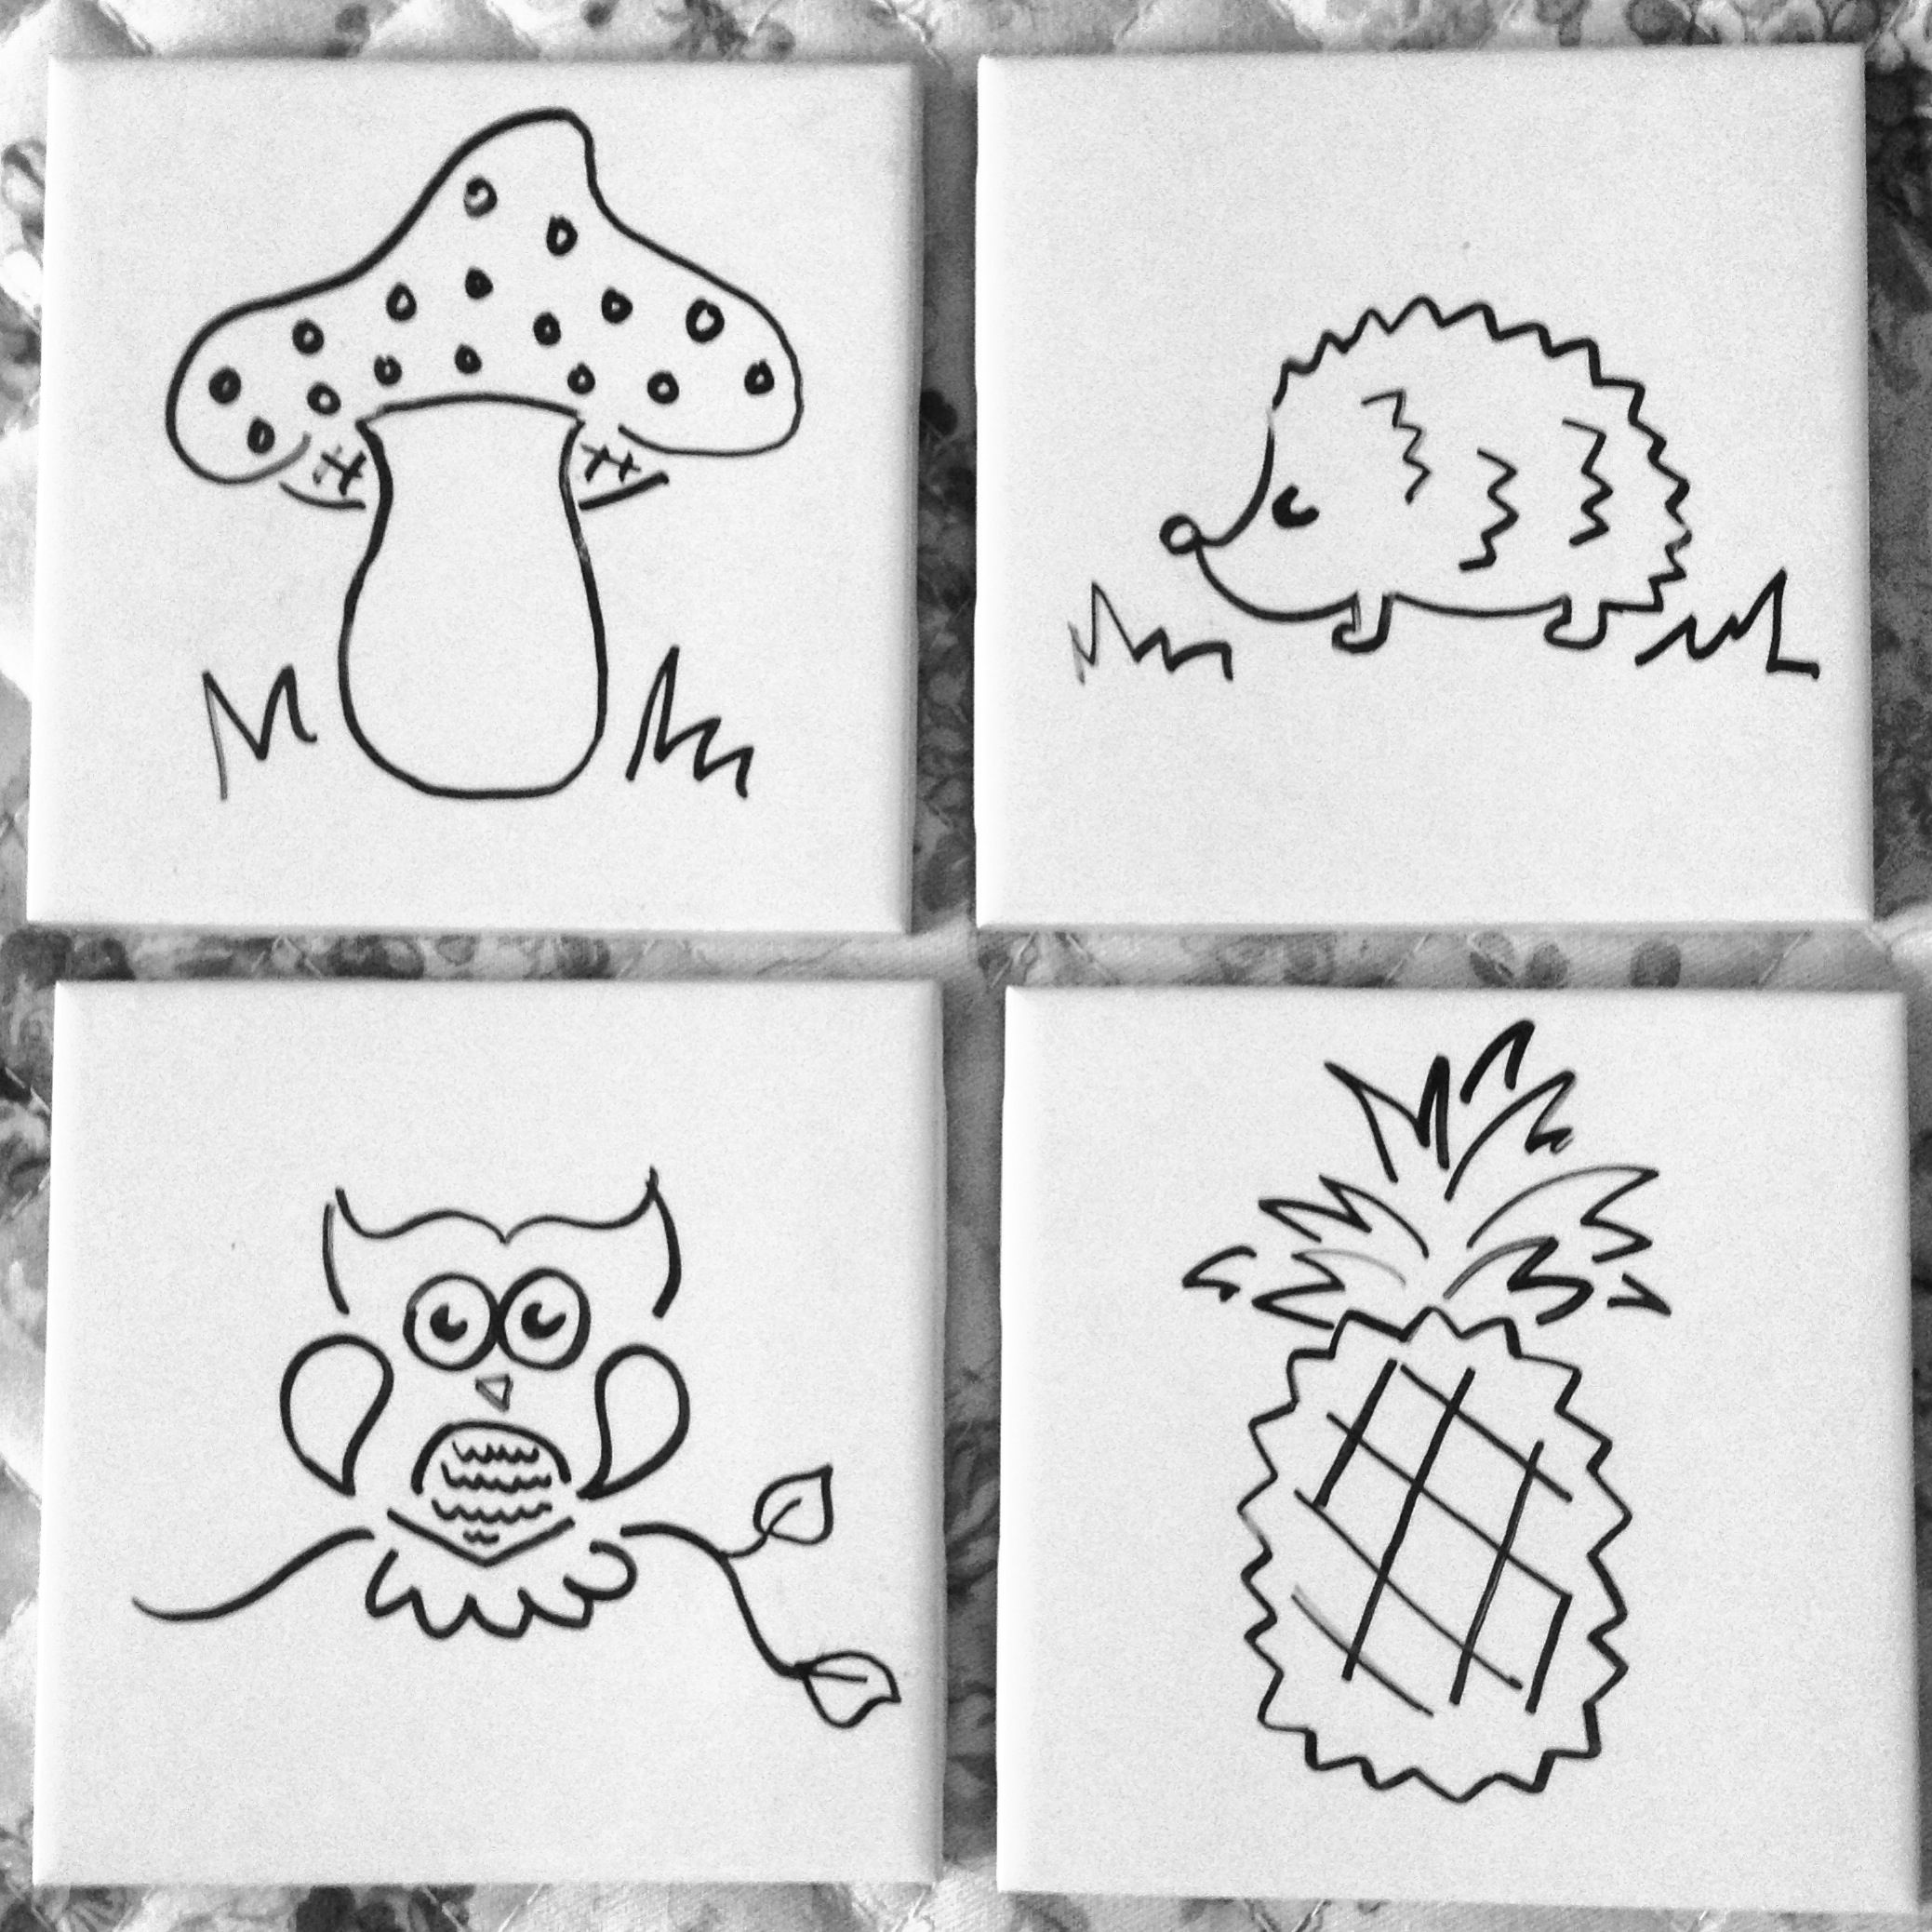 Diy coasters using 4x4 ceramic bath tiles sharpie ceramic diy coasters using 4x4 ceramic bath tiles sharpie ceramic weatherproof sealant and cork dailygadgetfo Images